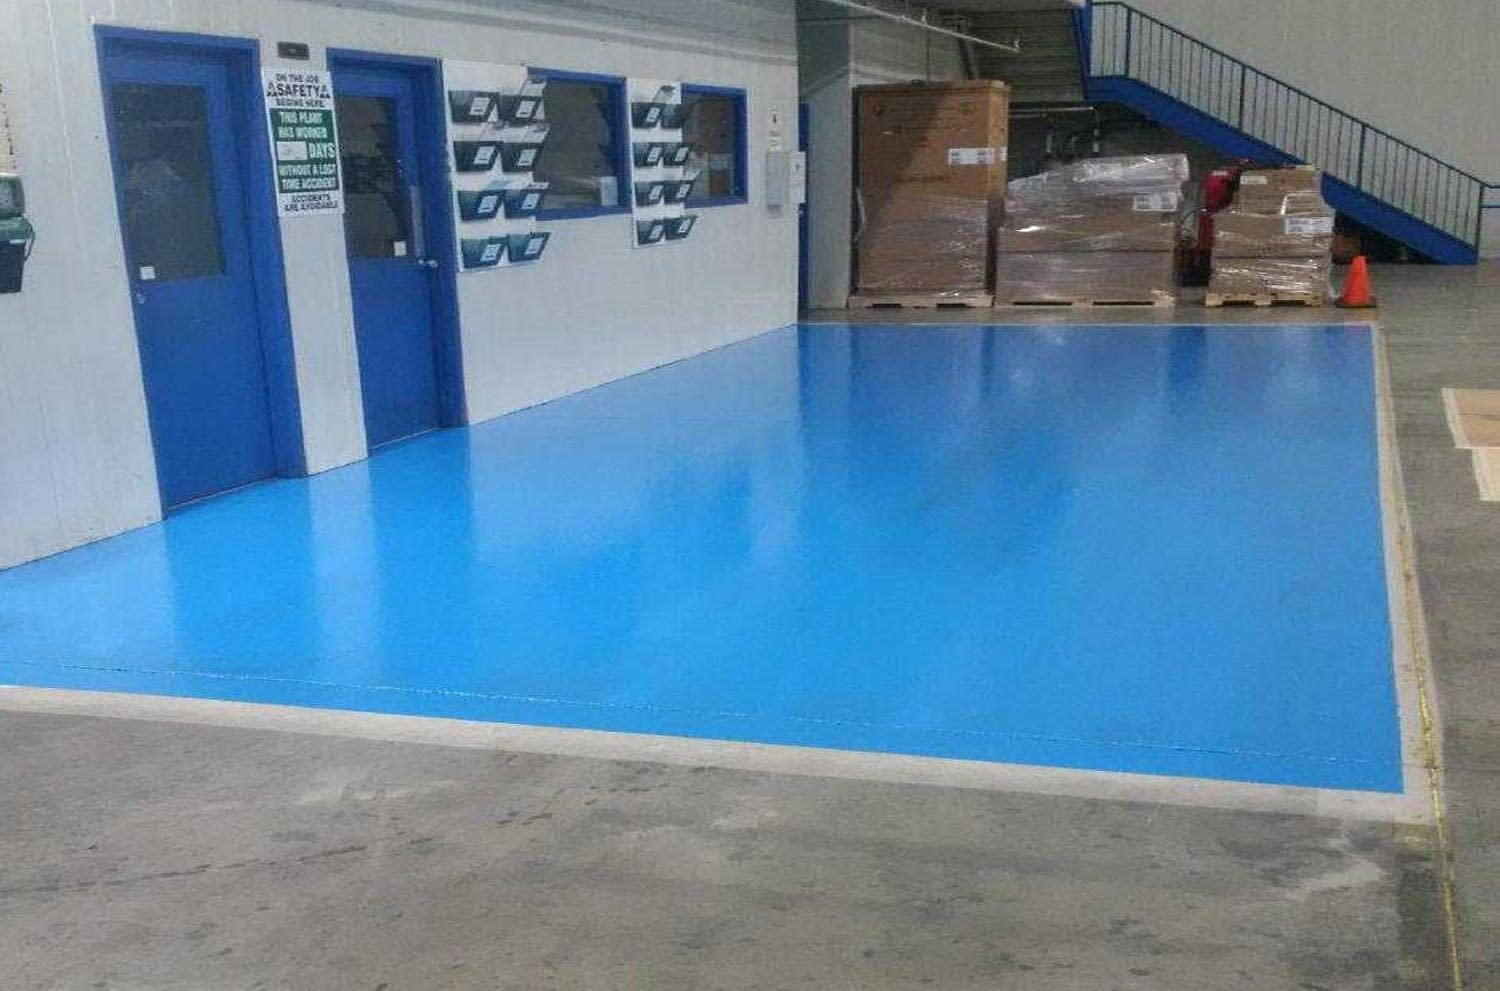 epoxy floor coating in a warehouse